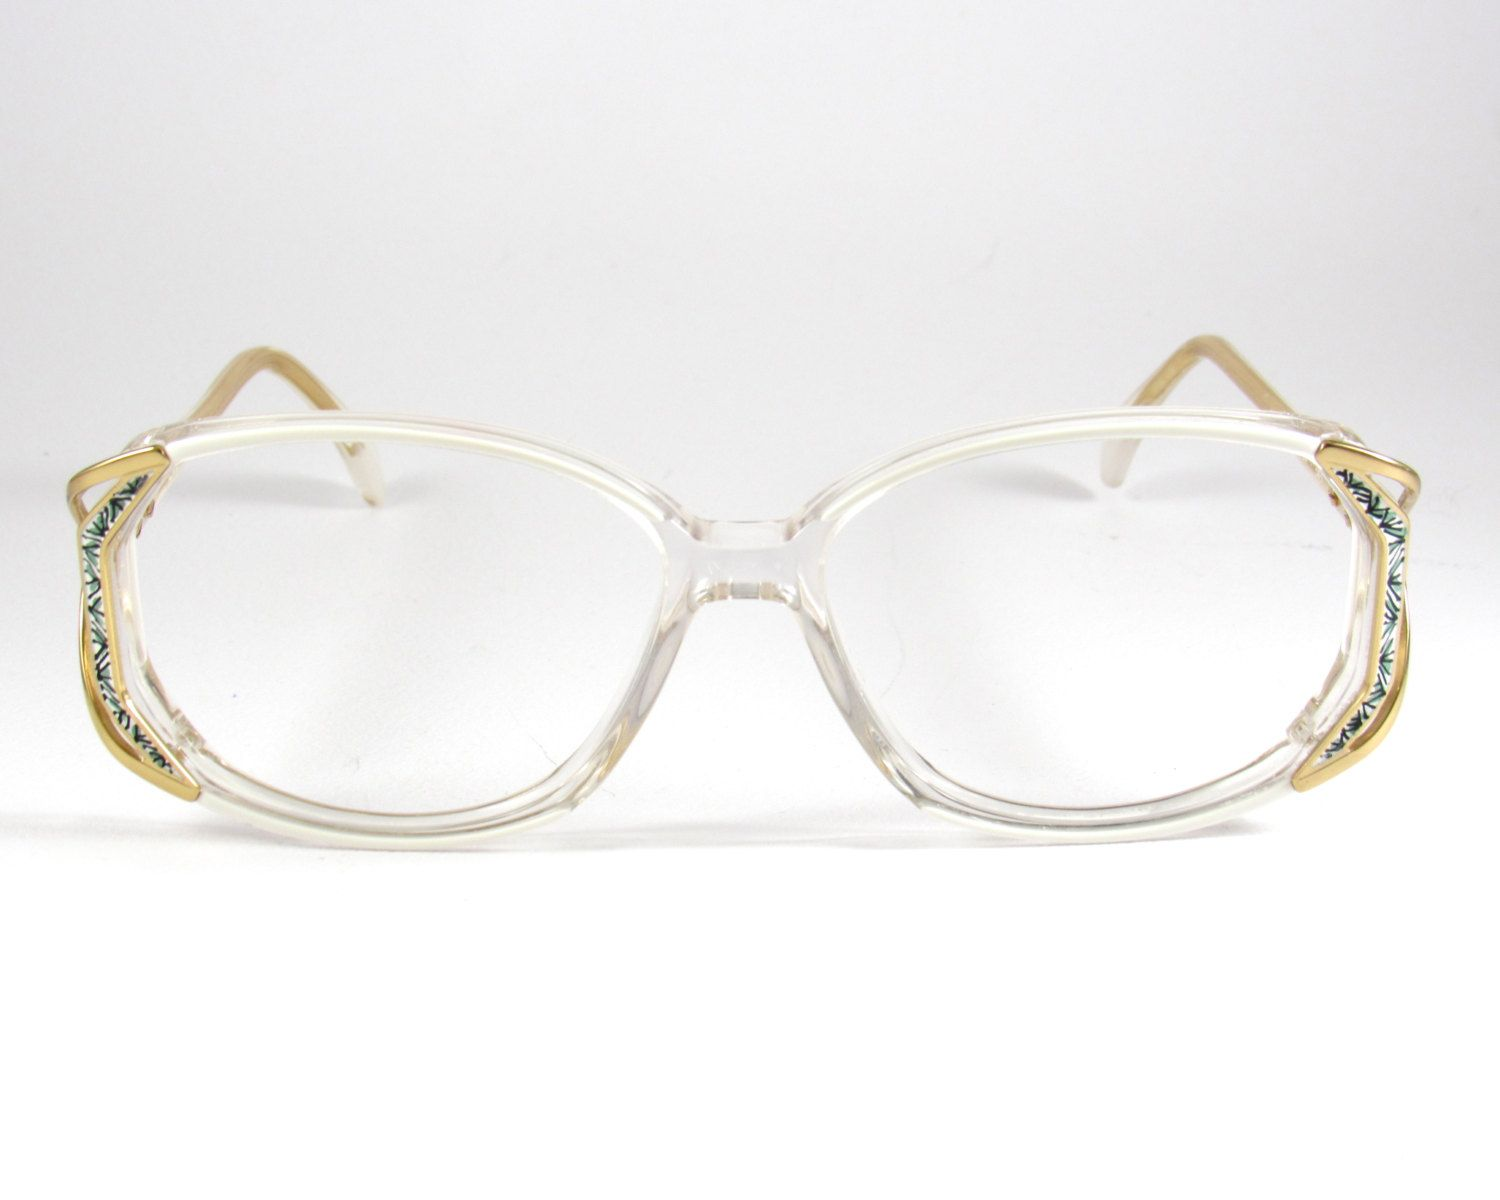 OWP Mod:2194, Rare Vintage OWP Eyeglasses made in W.Germany, Vintage ...